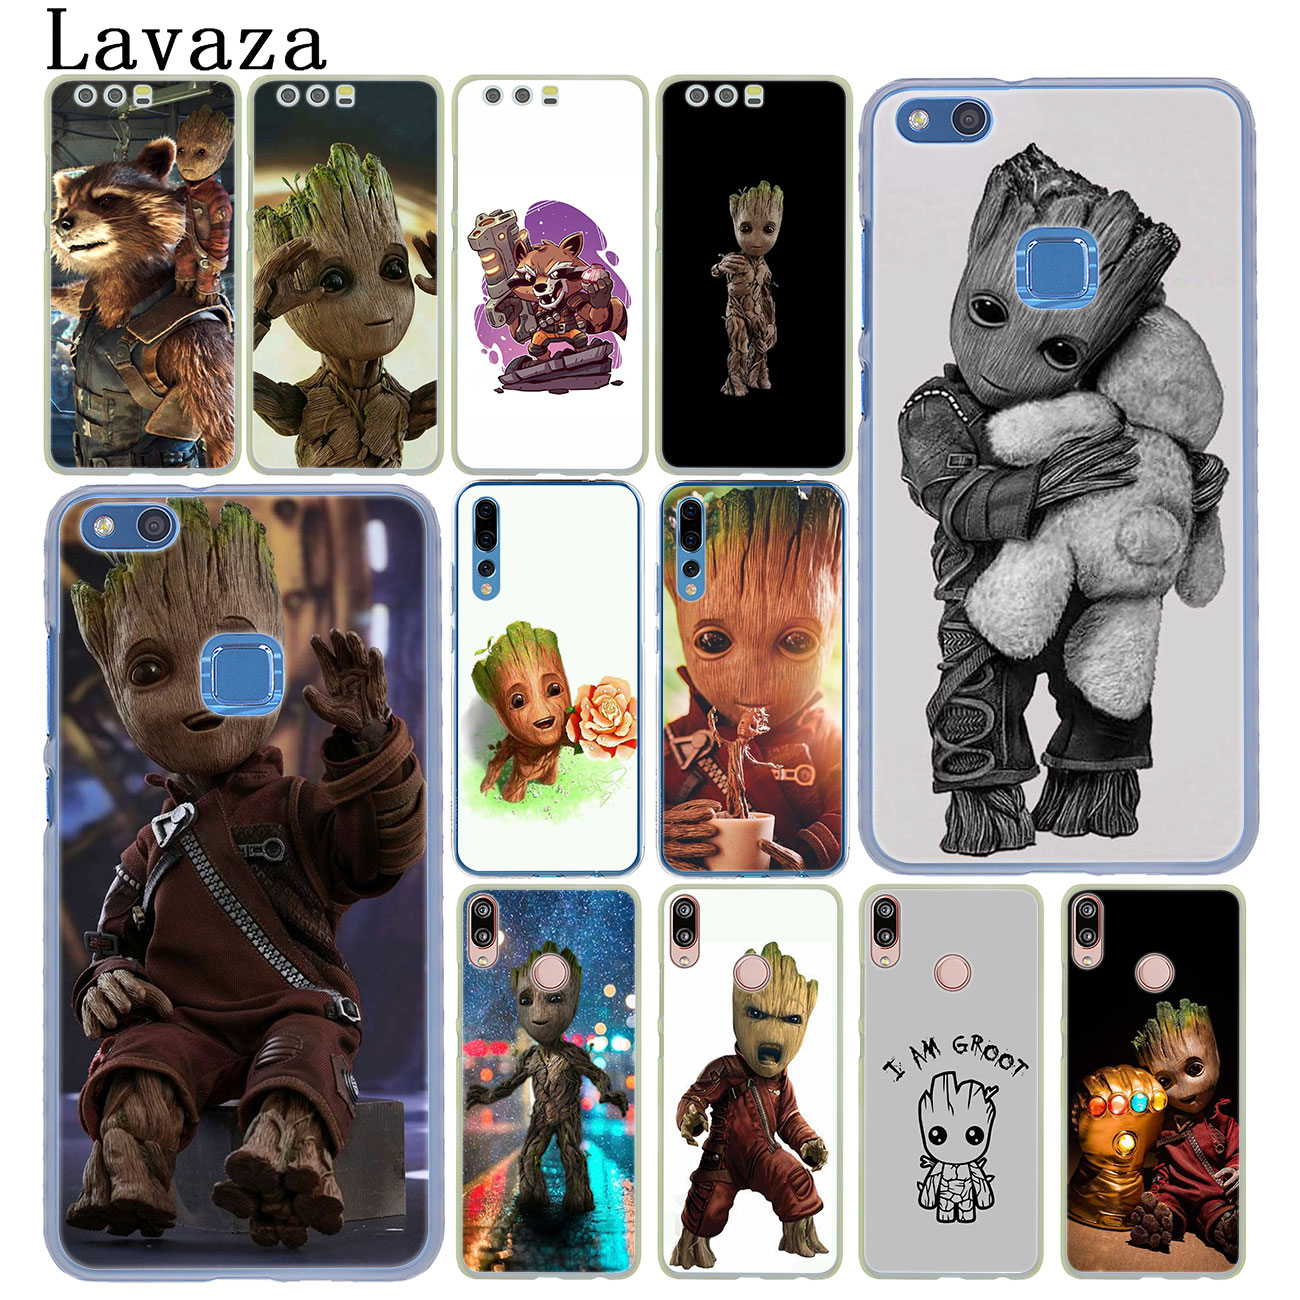 Lavaza Guardians of the for Galaxy <font><b>Marvel</b></font> <font><b>Case</b></font> for <font><b>Huawei</b></font> Y9 <font><b>Y7</b></font> Y6 Prime <font><b>2019</b></font> 2018 Honor 20 10 8C 8X 8 9X 9 Lite 7C 7X 7A Pro image